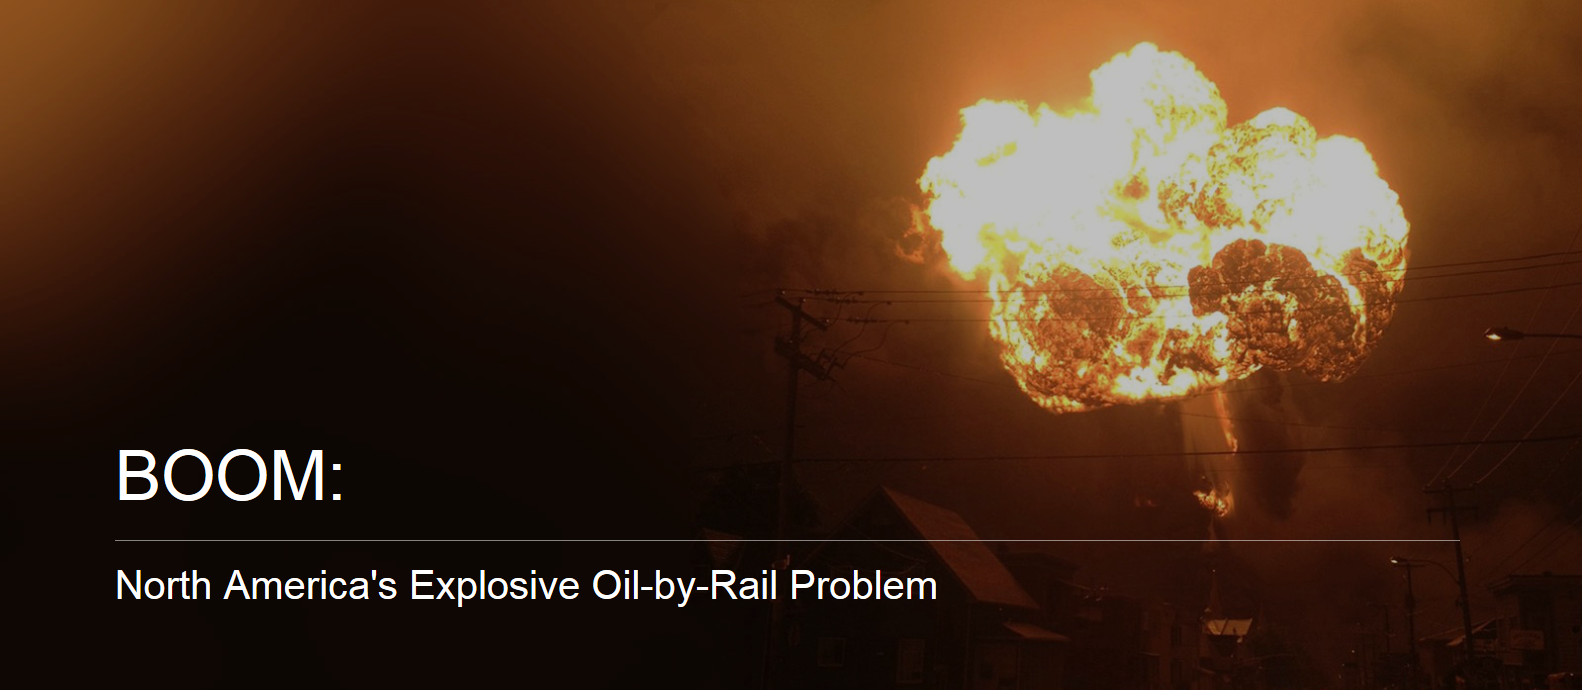 ICN_BOOM-North-Americas-Oil-by-Rail-Problem